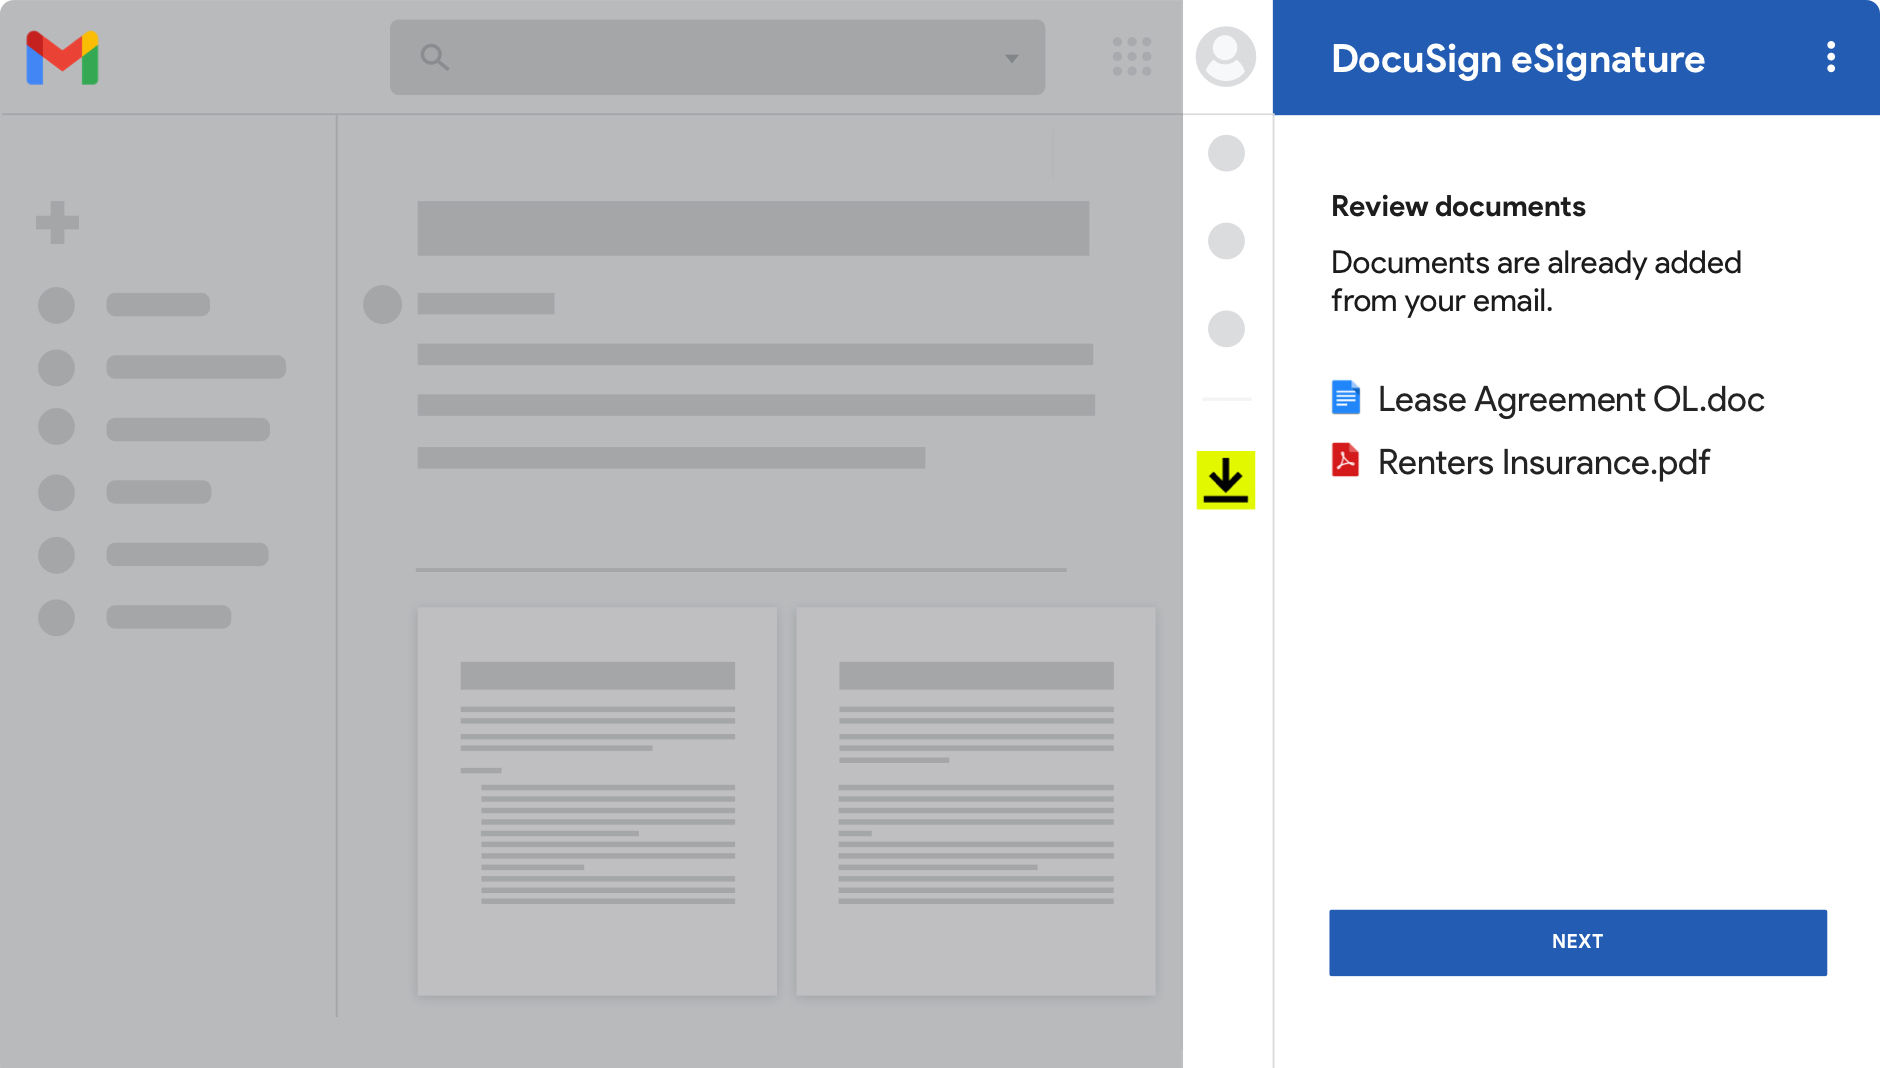 Gmail screenshot showing documents ready for review in DocuSign eSignature.